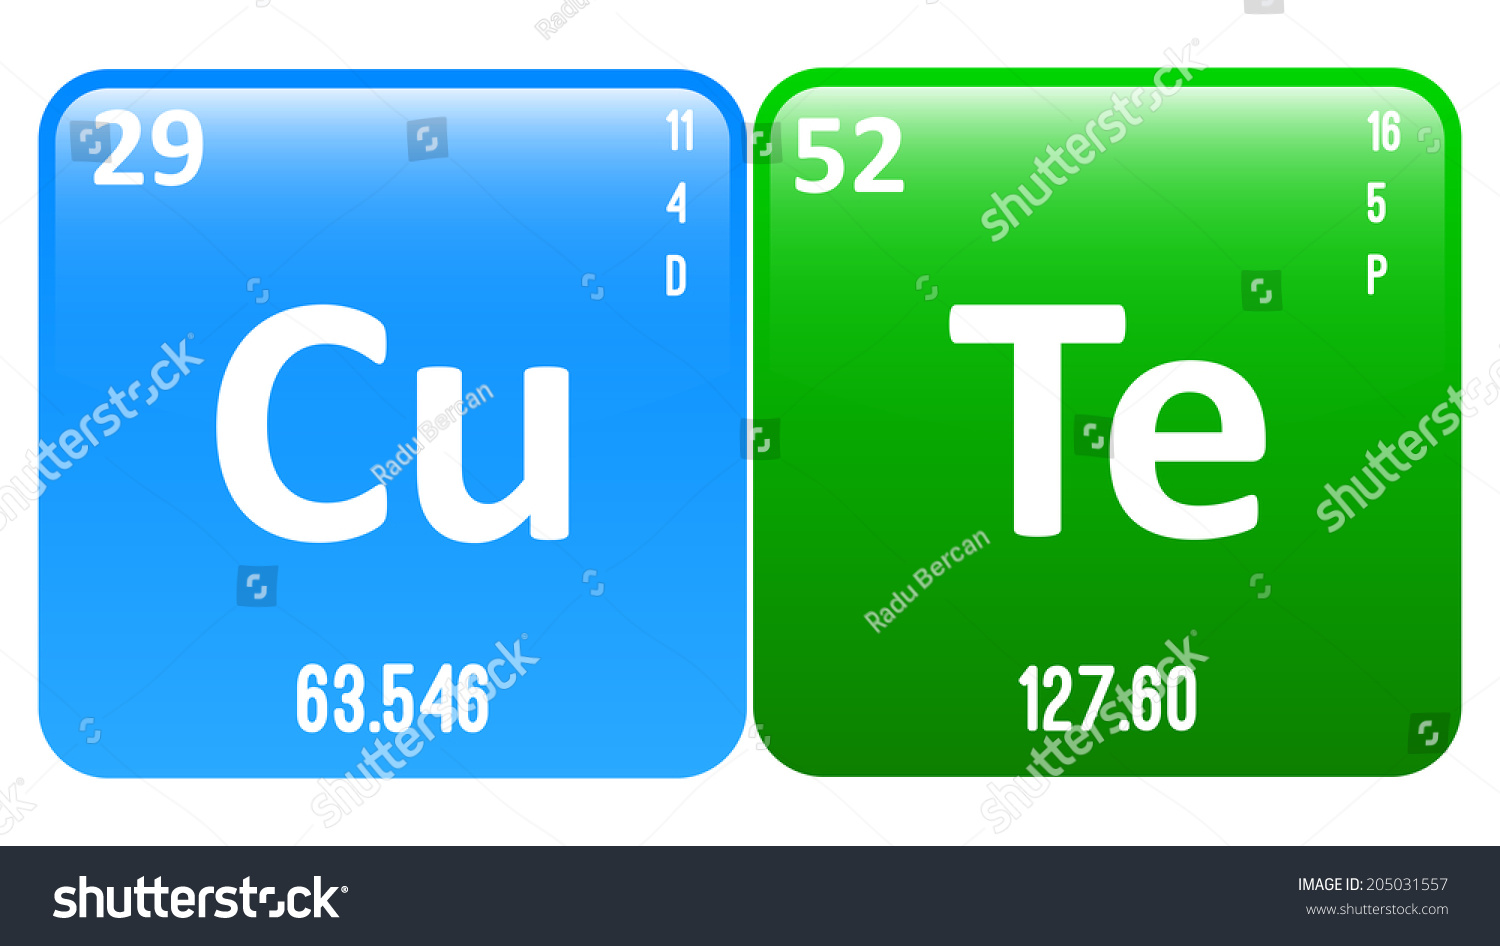 Cute word made periodic table elements stock vector 205031557 cute word made of periodic table elements copper and tellurium gamestrikefo Gallery